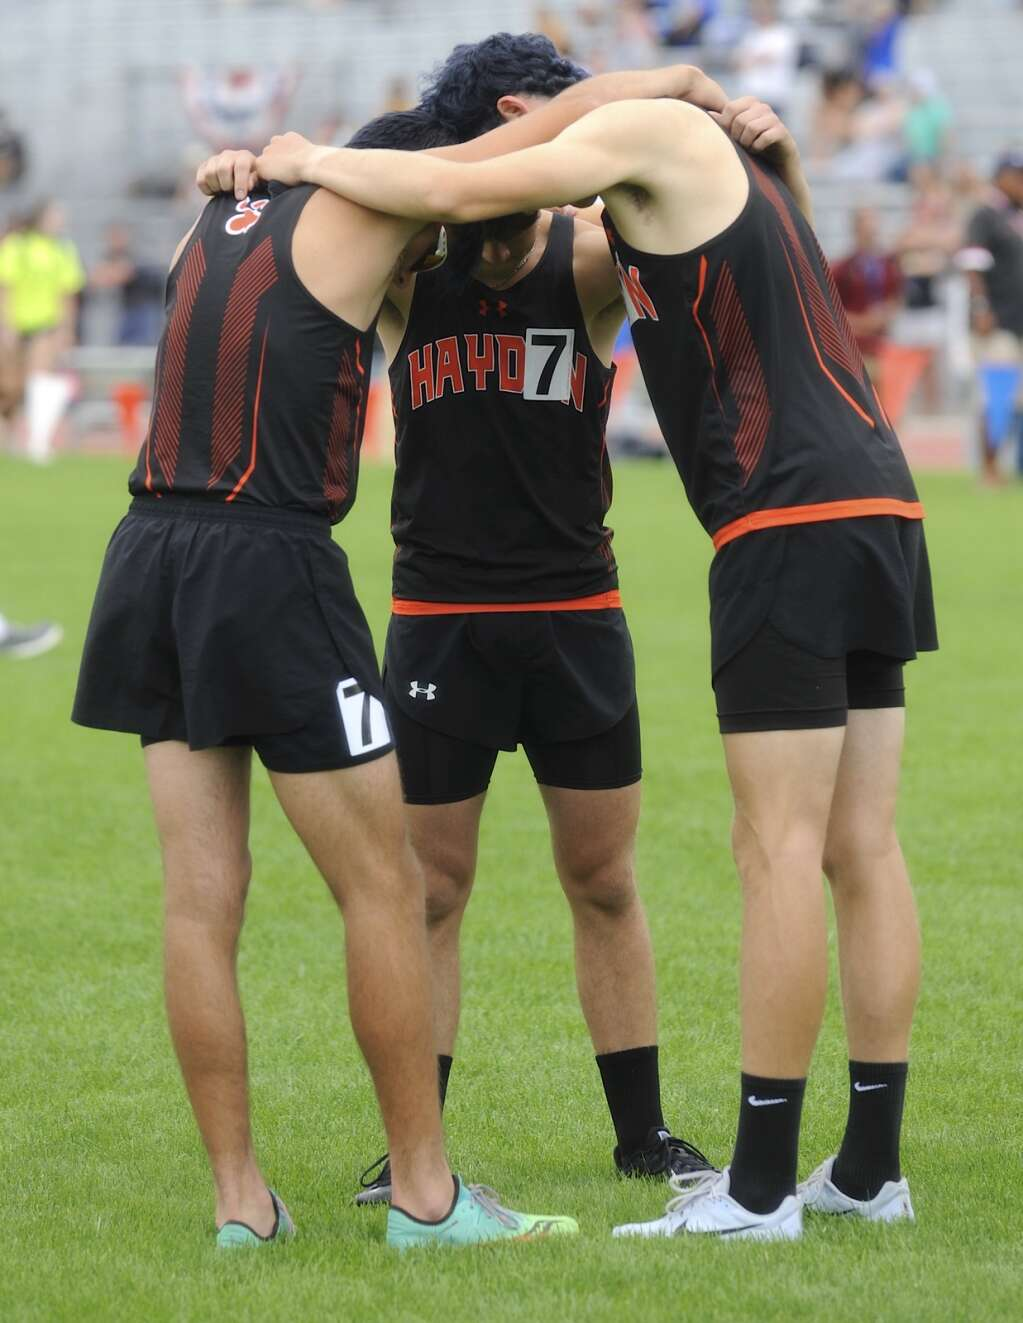 Three members at the CHSAA Track and Field State Championships at JeffCo Stadium on Thursday. (Photo by Shelby Reardon)